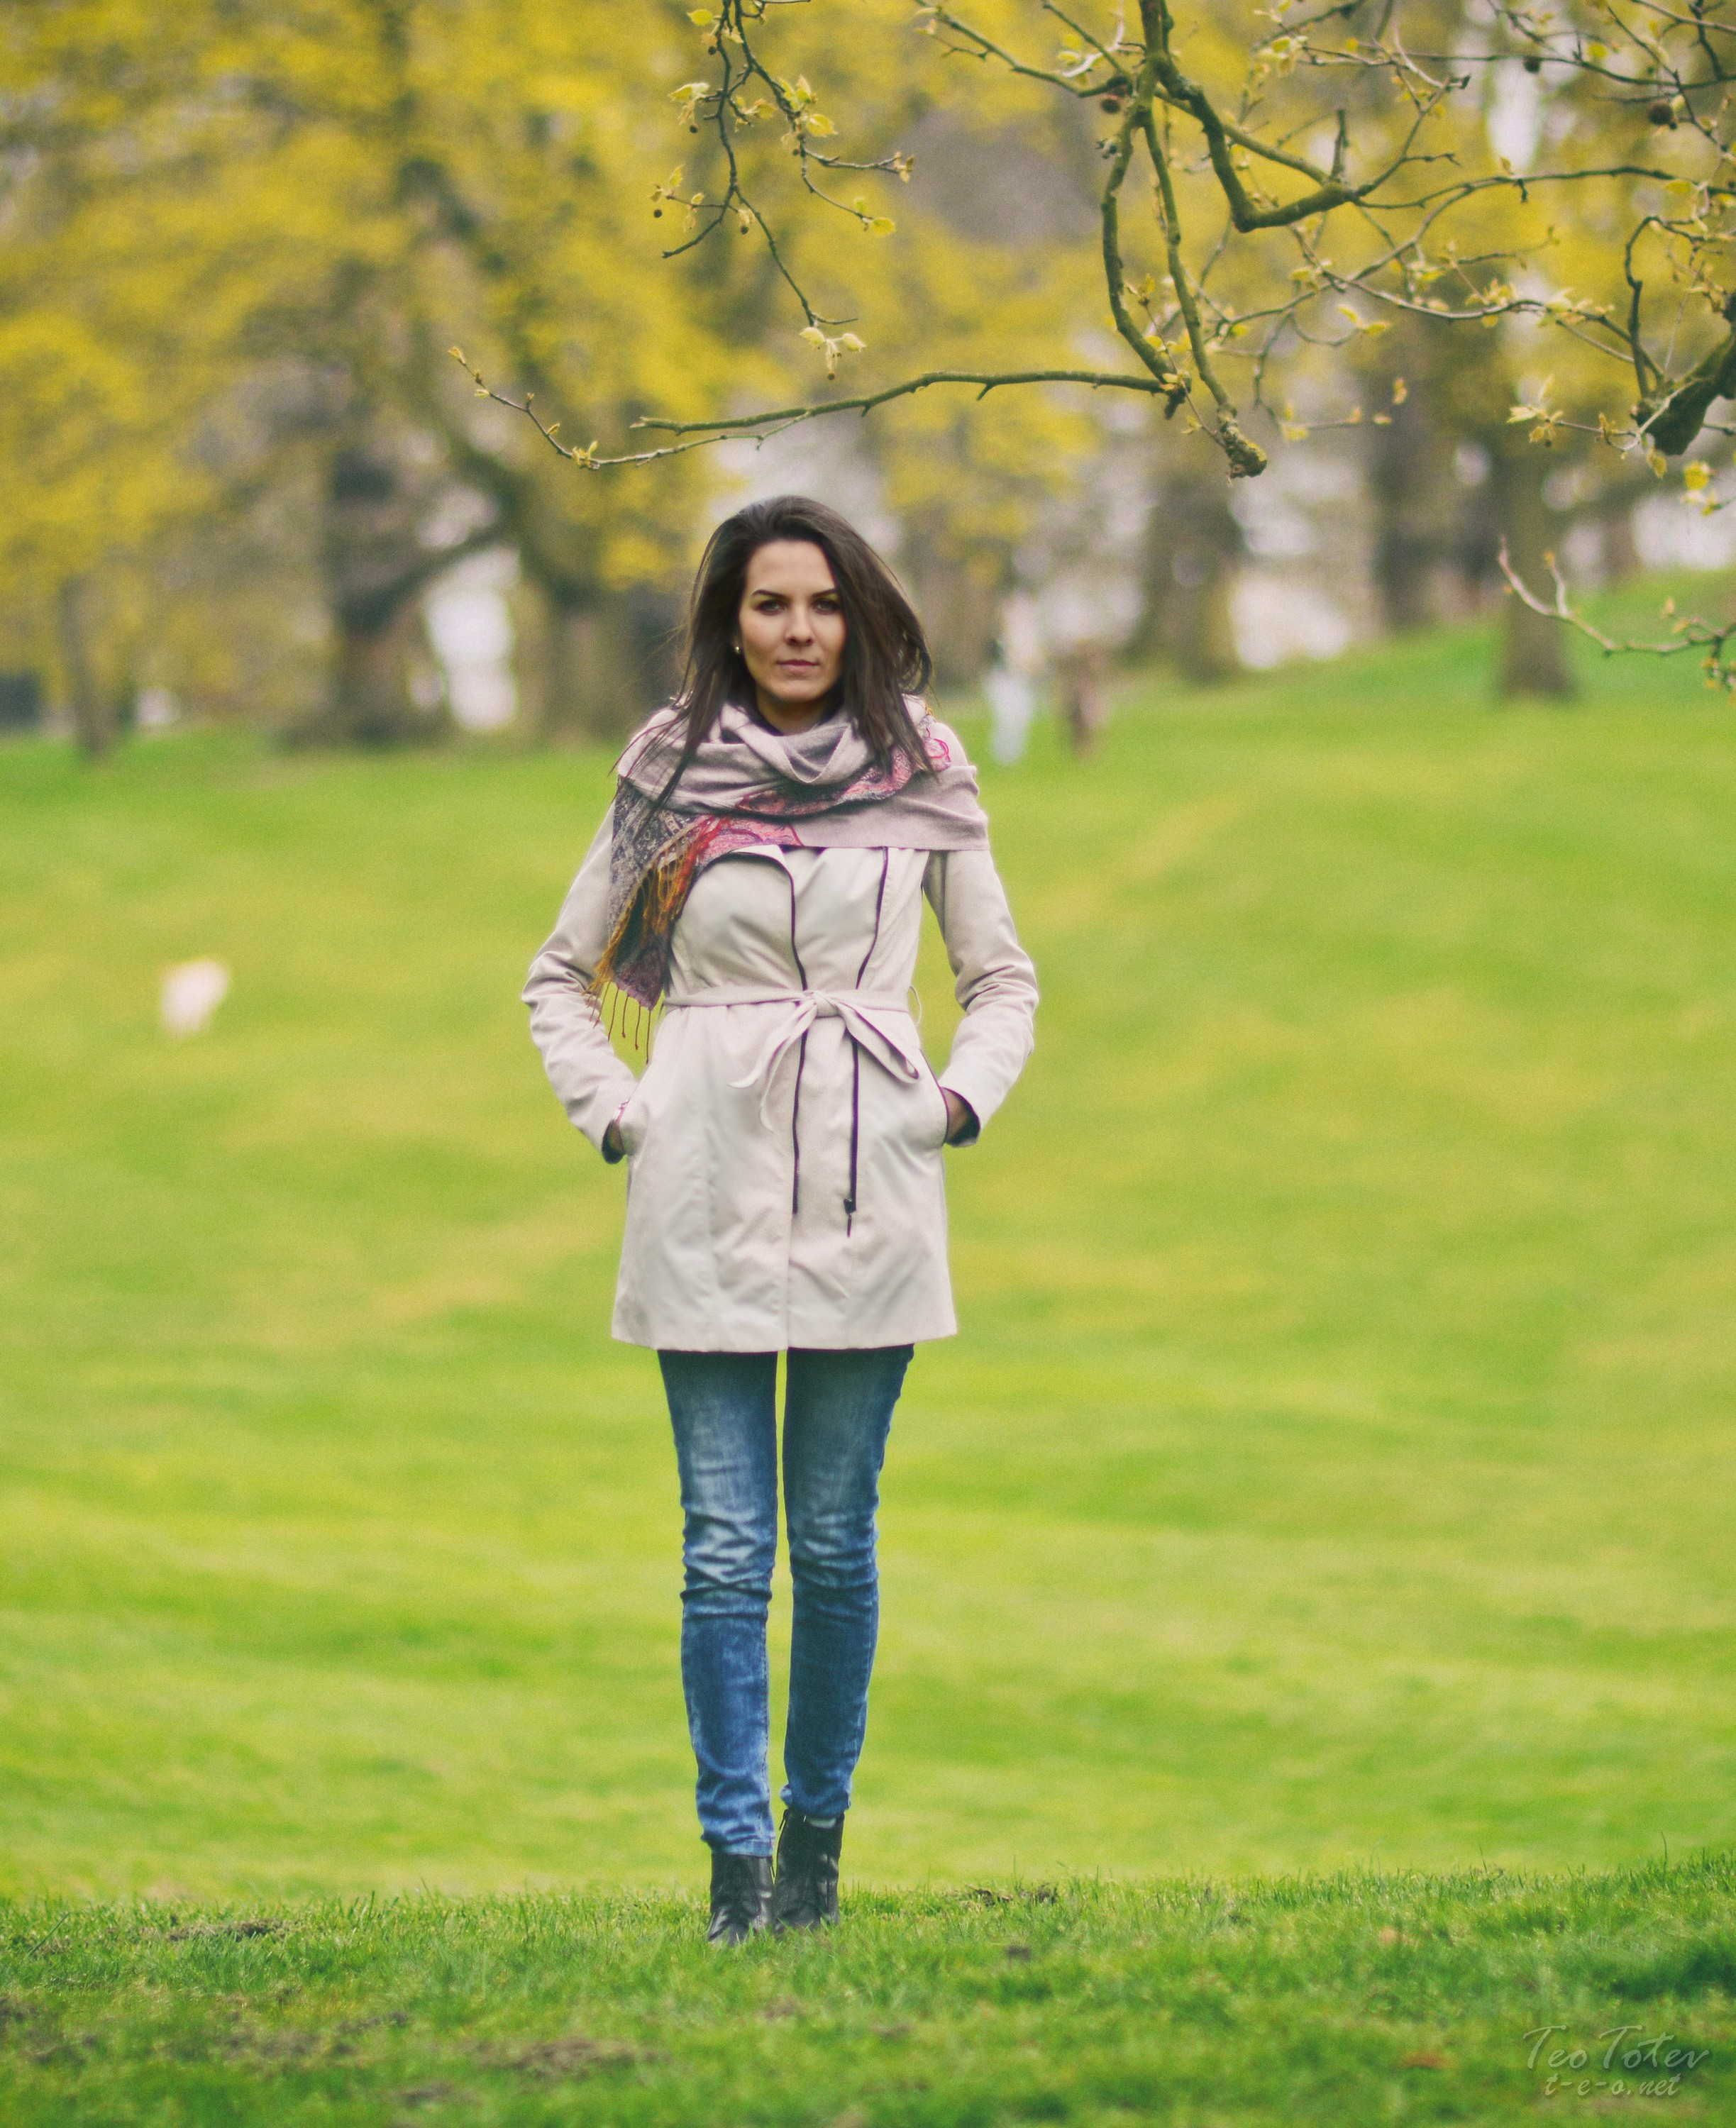 Autumn Fashion in Park